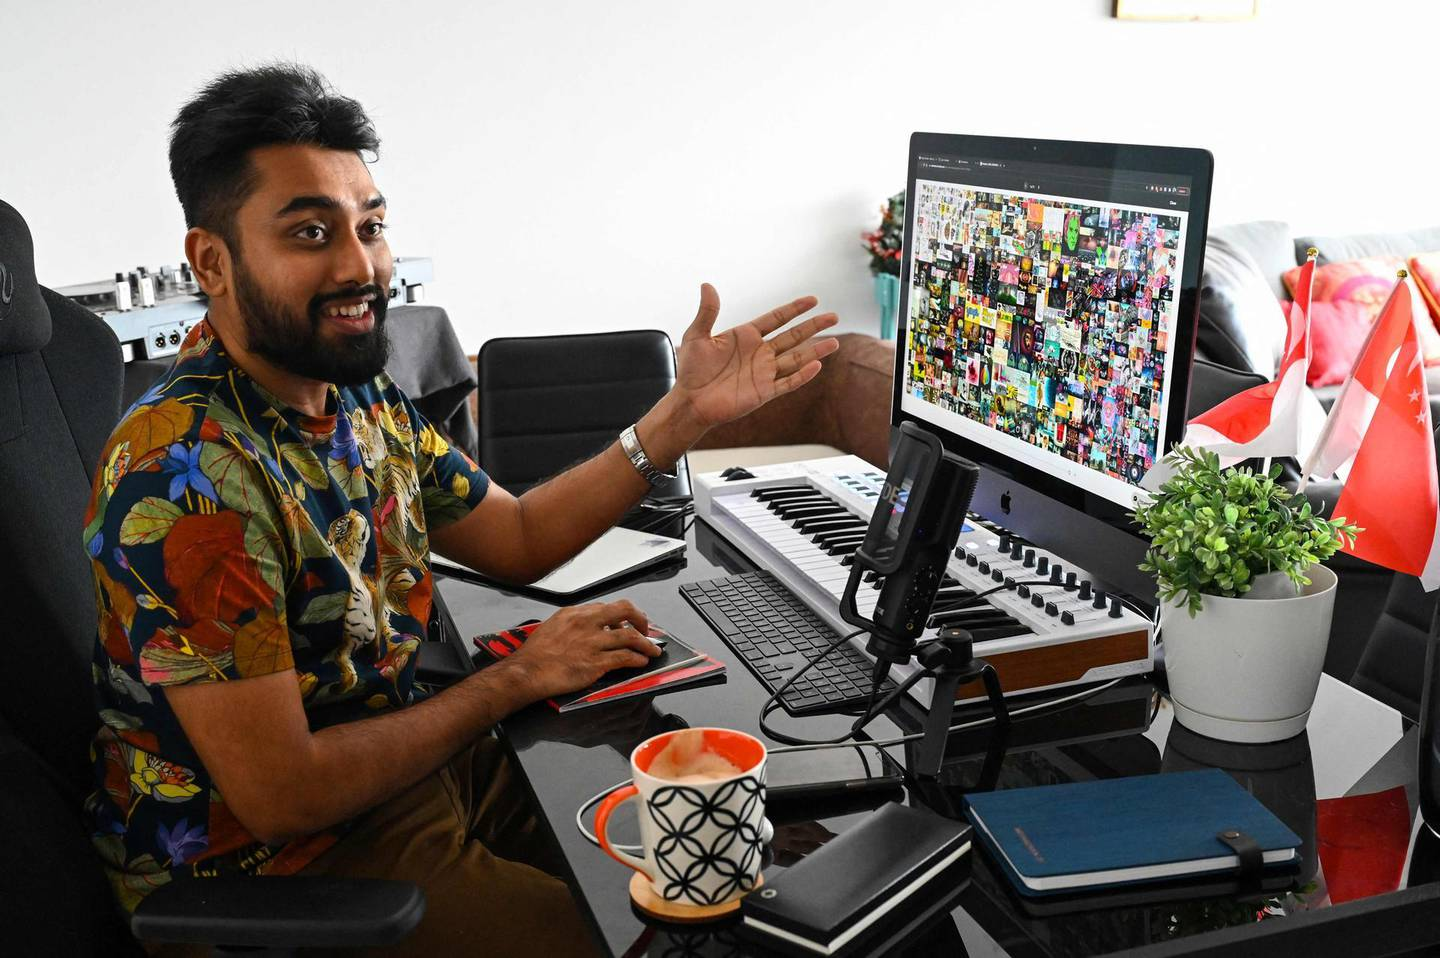 """This picture taken on April 7, 2021 shows blockchain entrepreneur Vignesh Sundaresan, also known by his pseudonym MetaKovan, showing the digital artwork non-fungible token (NFT) """"Everydays: The First 5,000 Days"""" by artist Beeple in his home in Singapore. Last month the programmer bought the world's most expensive NFT for $69.3 million, highlighting how virtual work is establishing itself as a new creative genre. - RESTRICTED TO EDITORIAL USE - MANDATORY MENTION OF THE ARTIST UPON PUBLICATION - TO ILLUSTRATE THE EVENT AS SPECIFIED IN THE CAPTION  TO GO WITH Singapore-US-arts-IT, INTERVIEW by Catherine LAI  / AFP / Roslan RAHMAN / RESTRICTED TO EDITORIAL USE - MANDATORY MENTION OF THE ARTIST UPON PUBLICATION - TO ILLUSTRATE THE EVENT AS SPECIFIED IN THE CAPTION  TO GO WITH Singapore-US-arts-IT, INTERVIEW by Catherine LAI"""